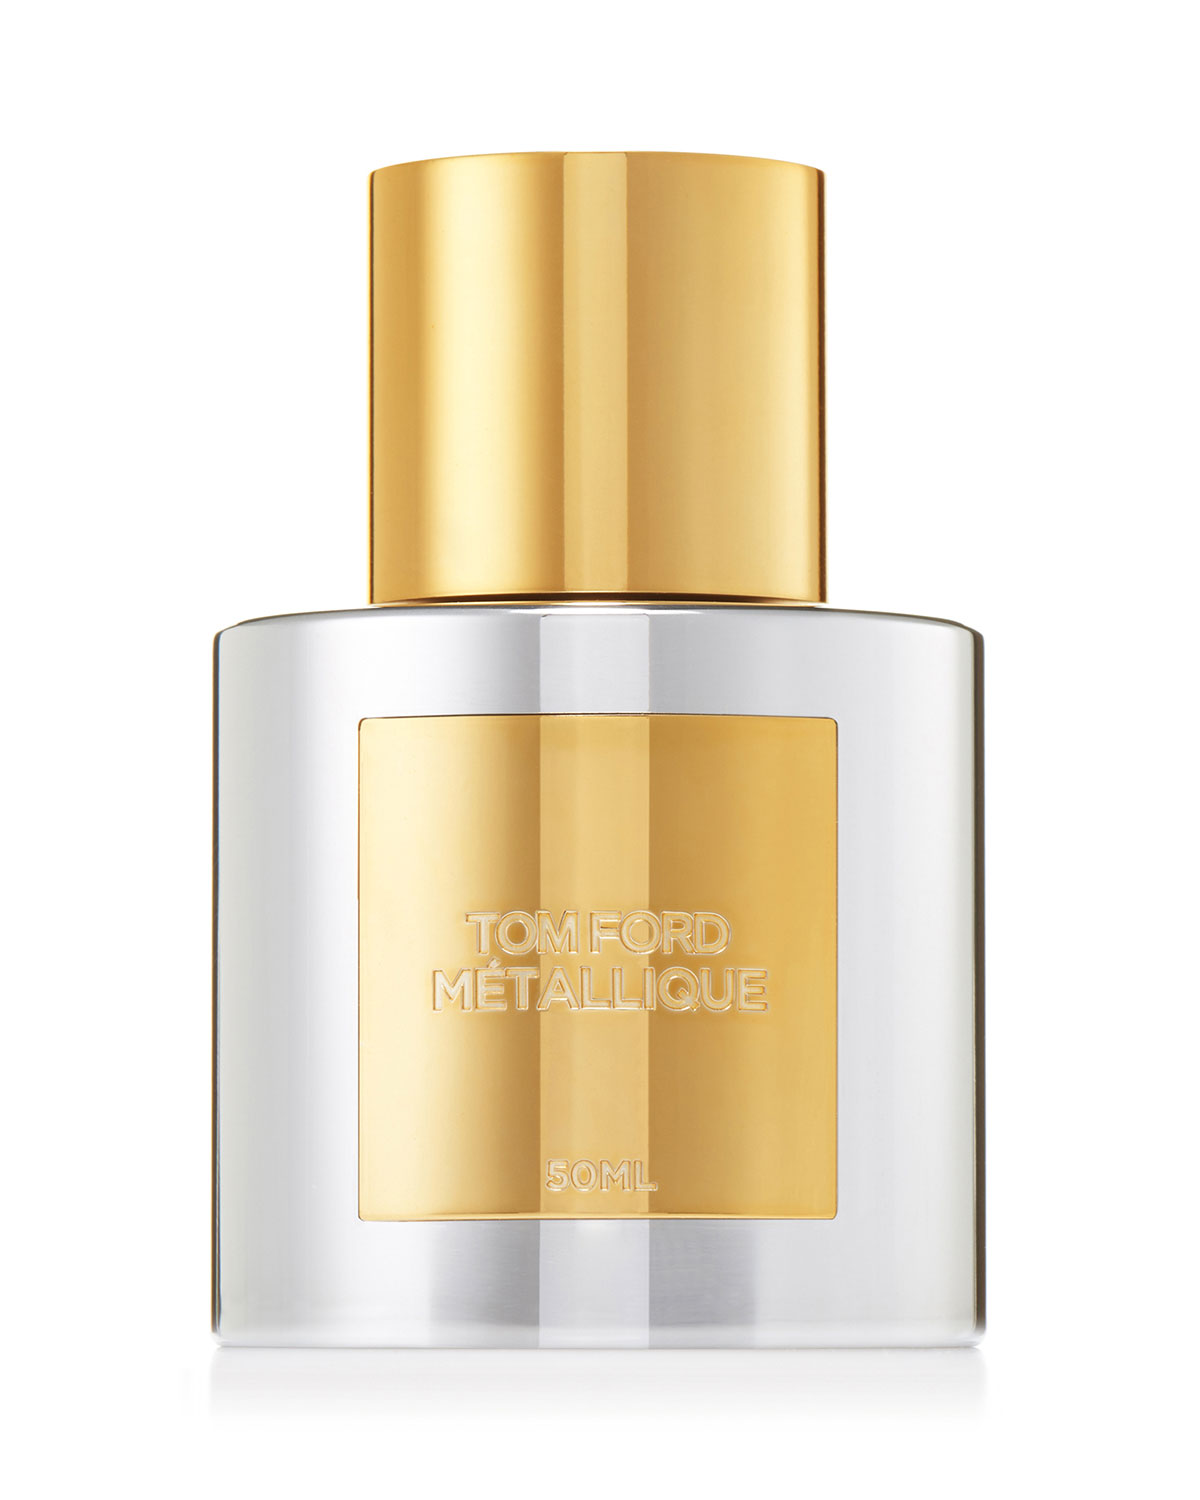 TOM FORD 1.7 oz. Metallique